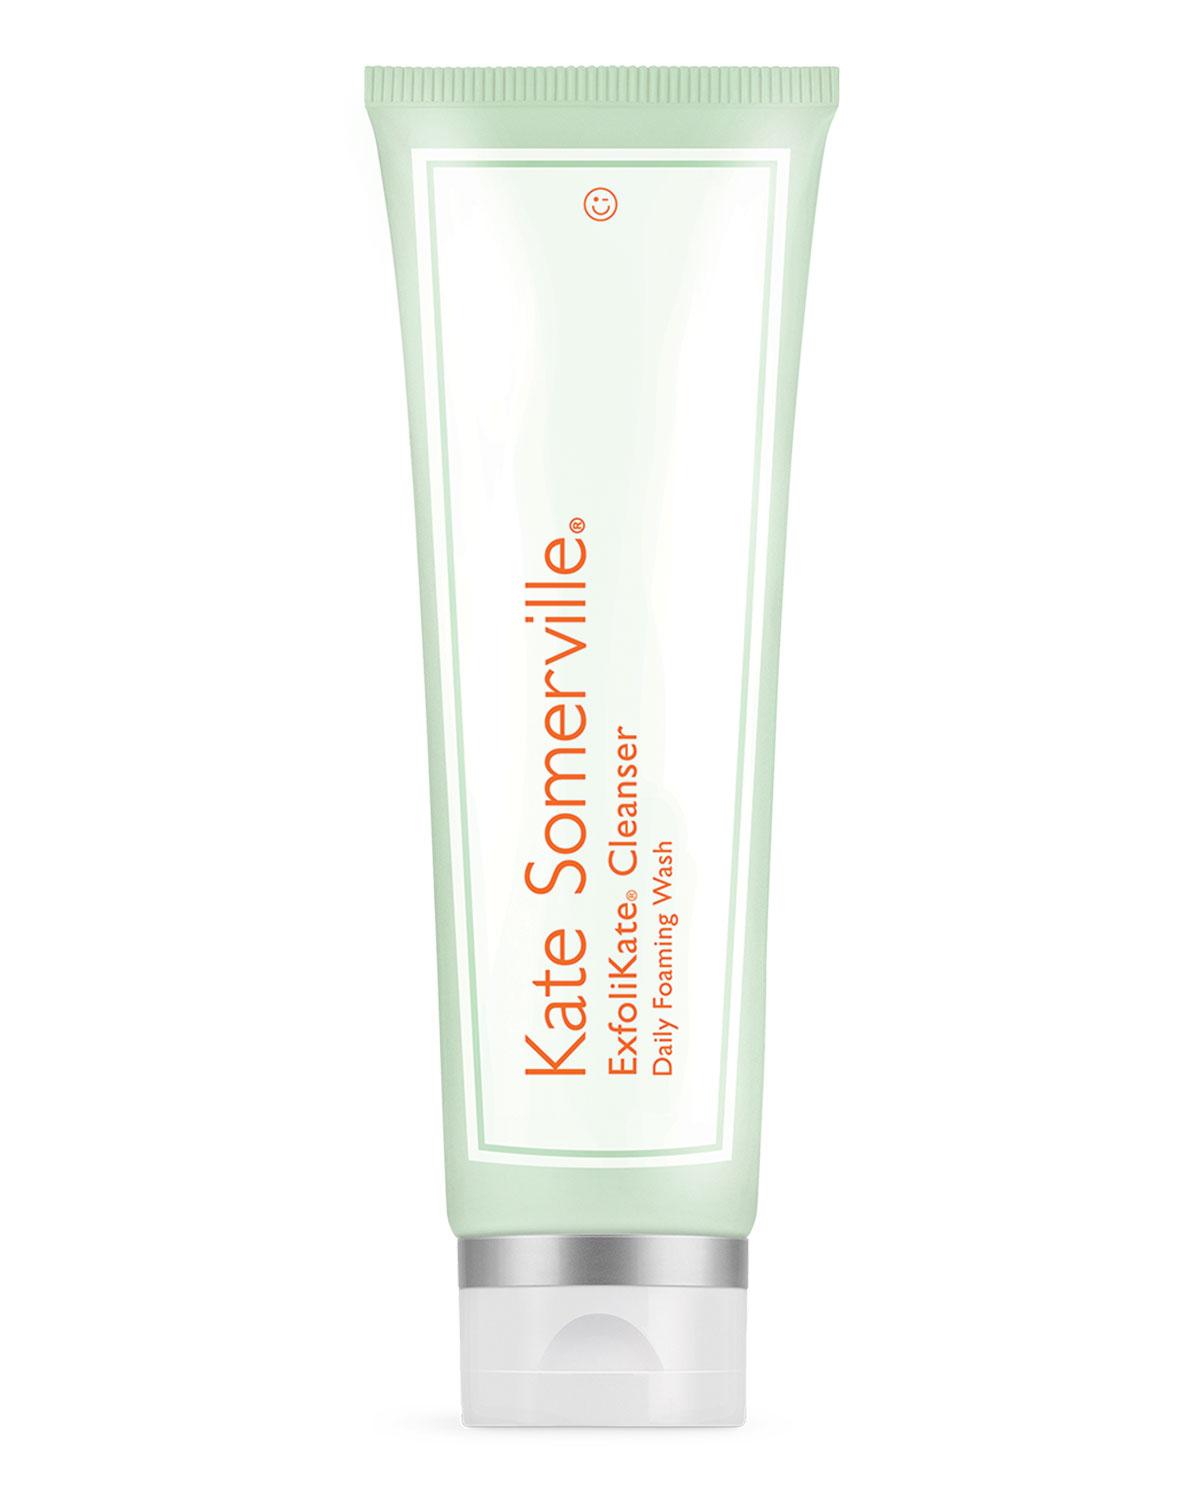 4 oz. ExfoliKate Cleanser Daily Foaming Wash